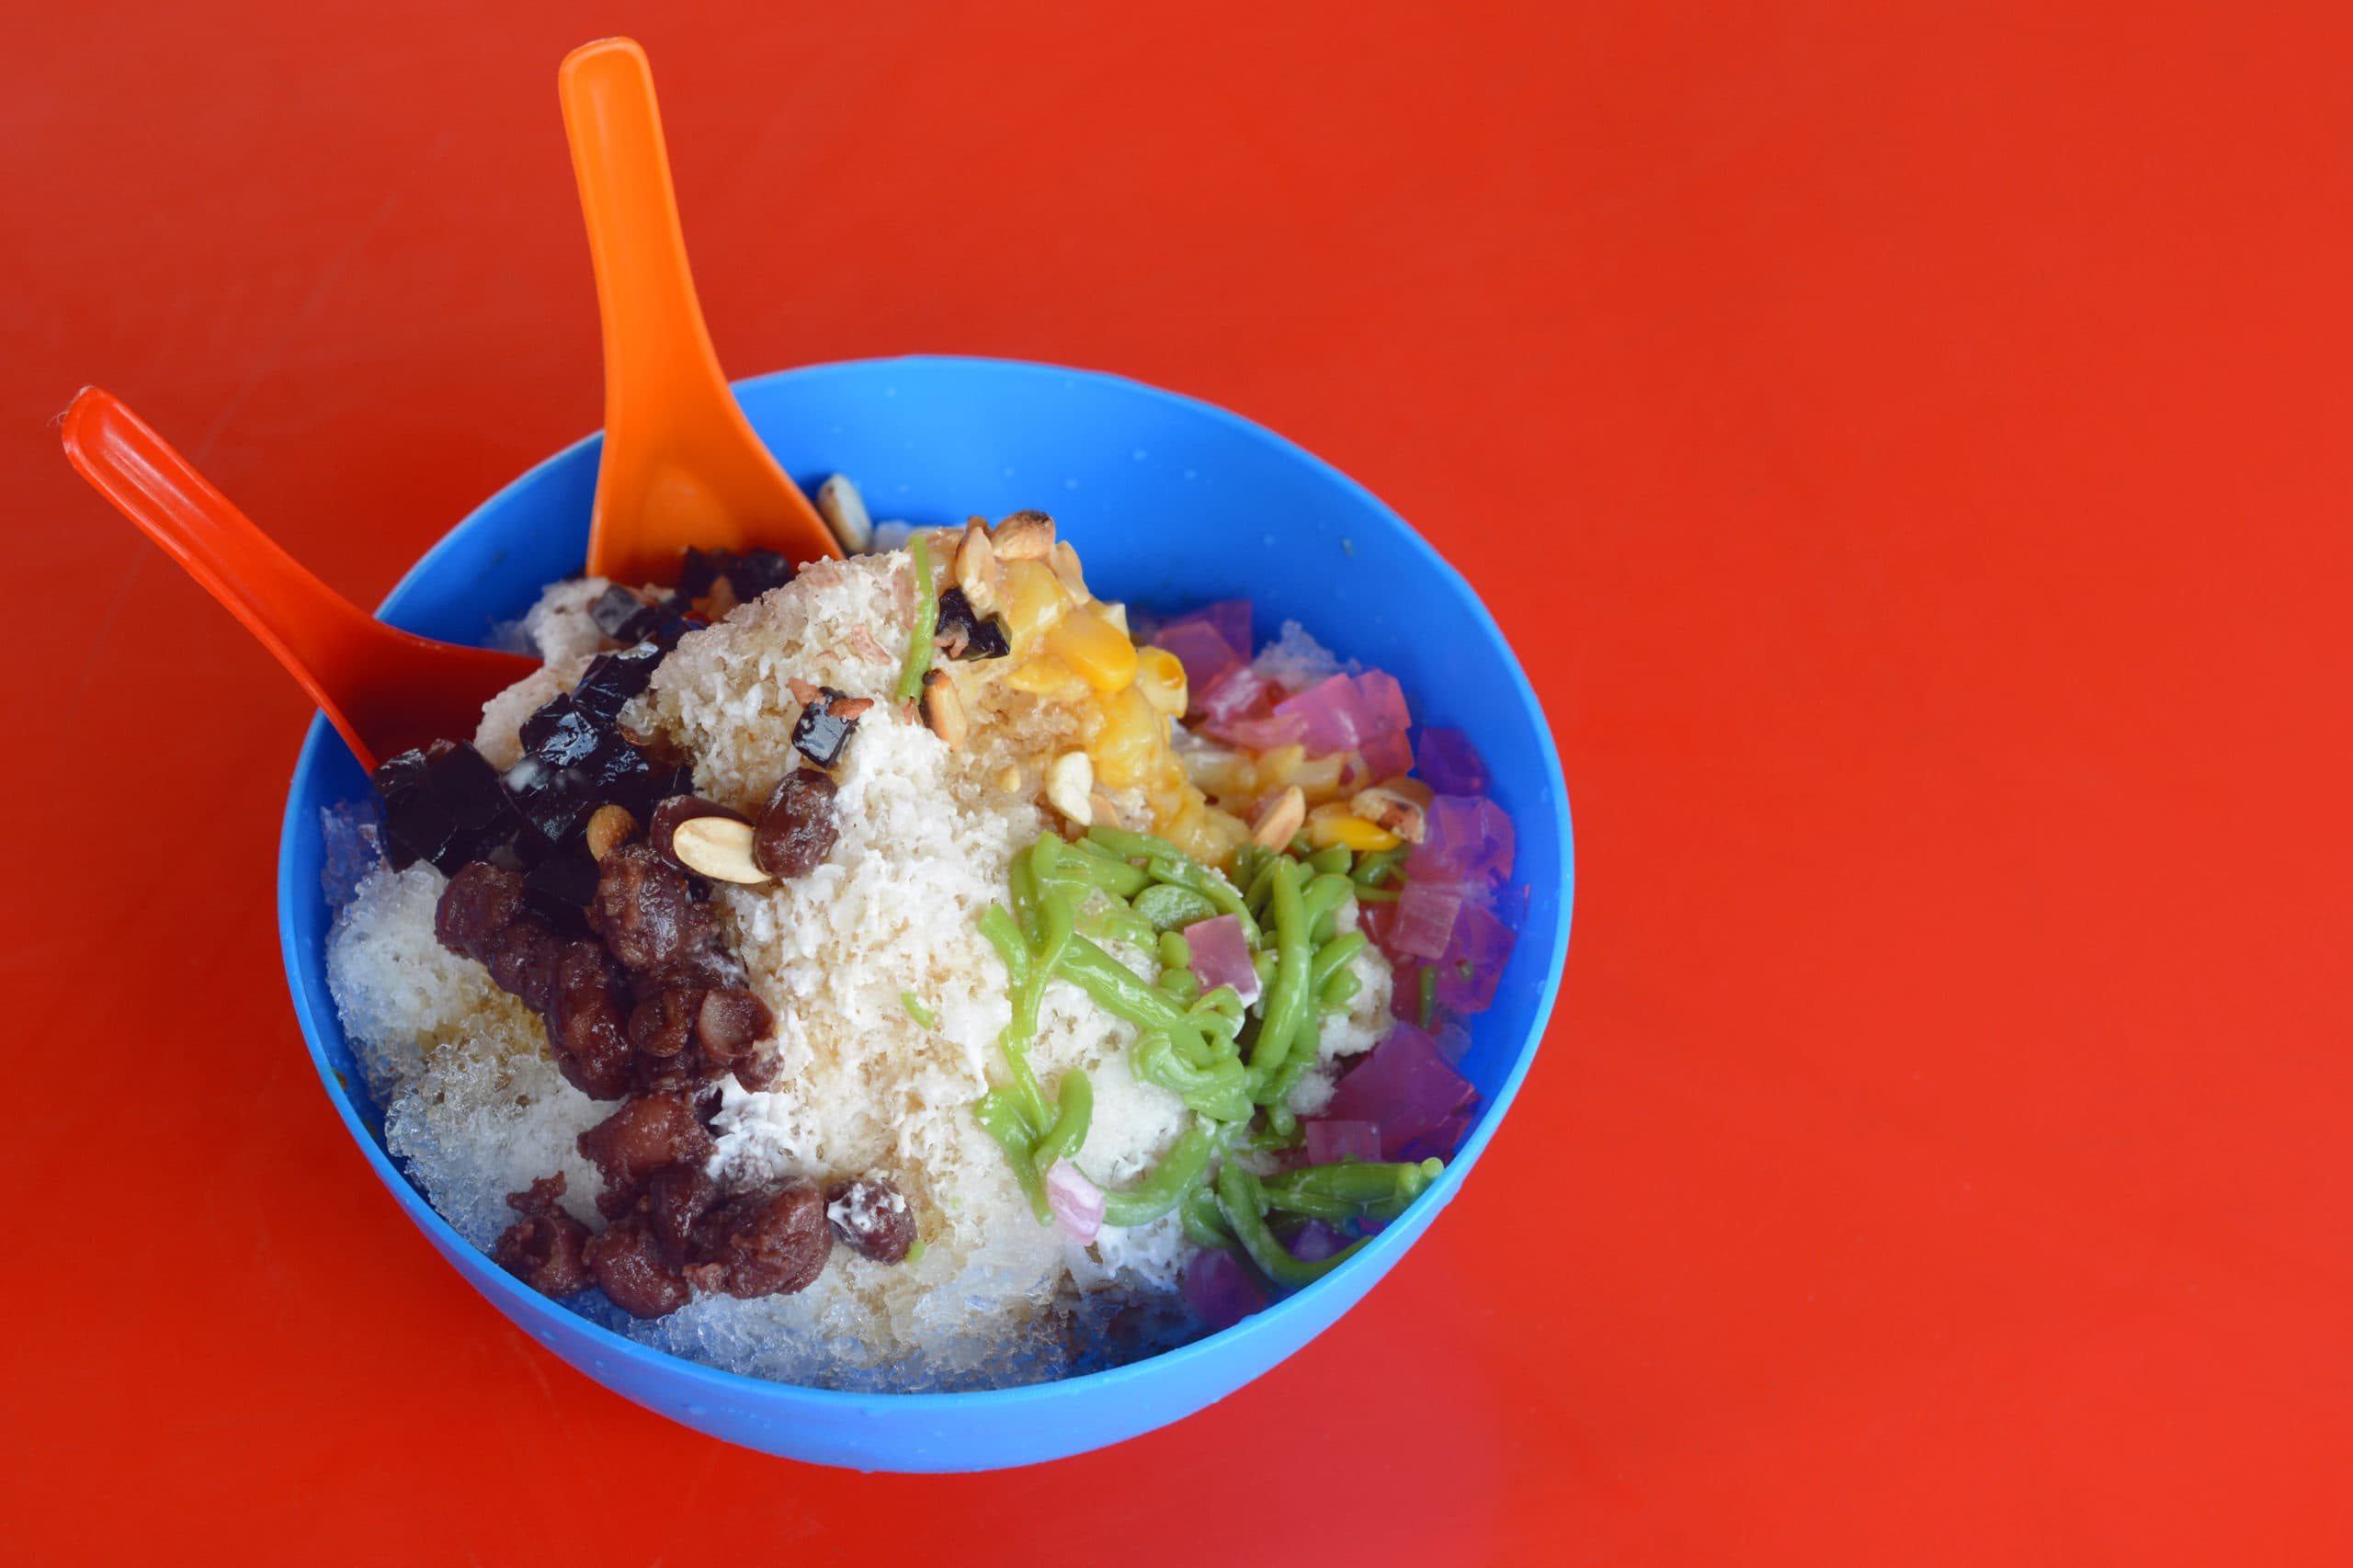 Ice Kacang Or Ais Kacang (ABC) In Malay Language, A Colorful Malaysian Dessert Made Of Shaved Ice, Beans And Colorful Jelly.